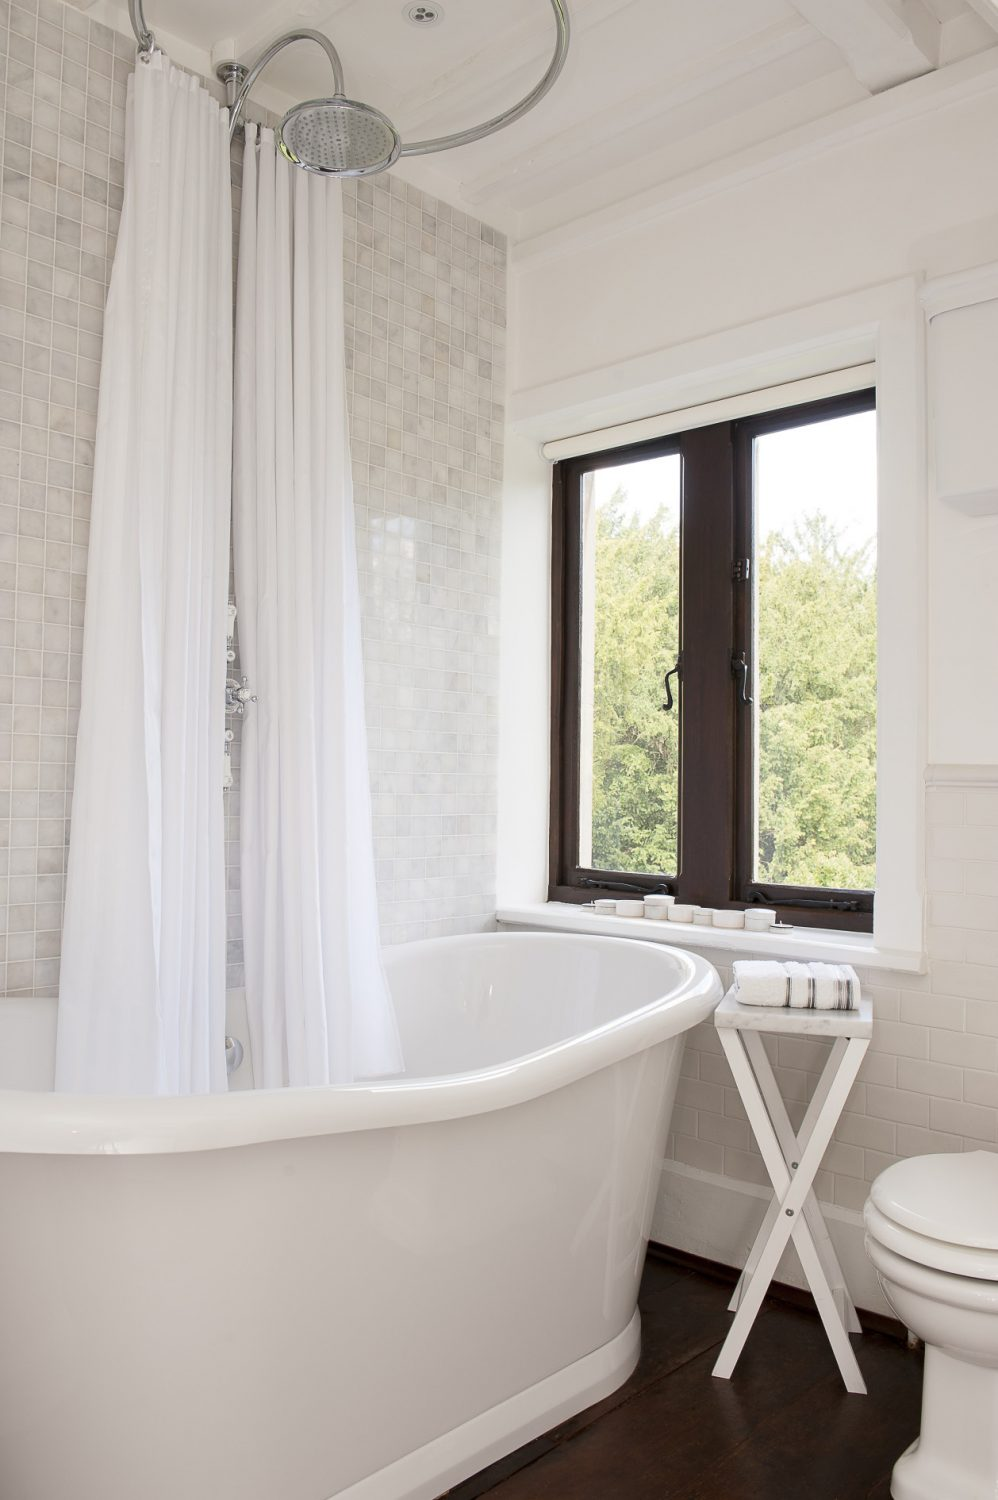 The roll top bath in the Victorian style bathroom